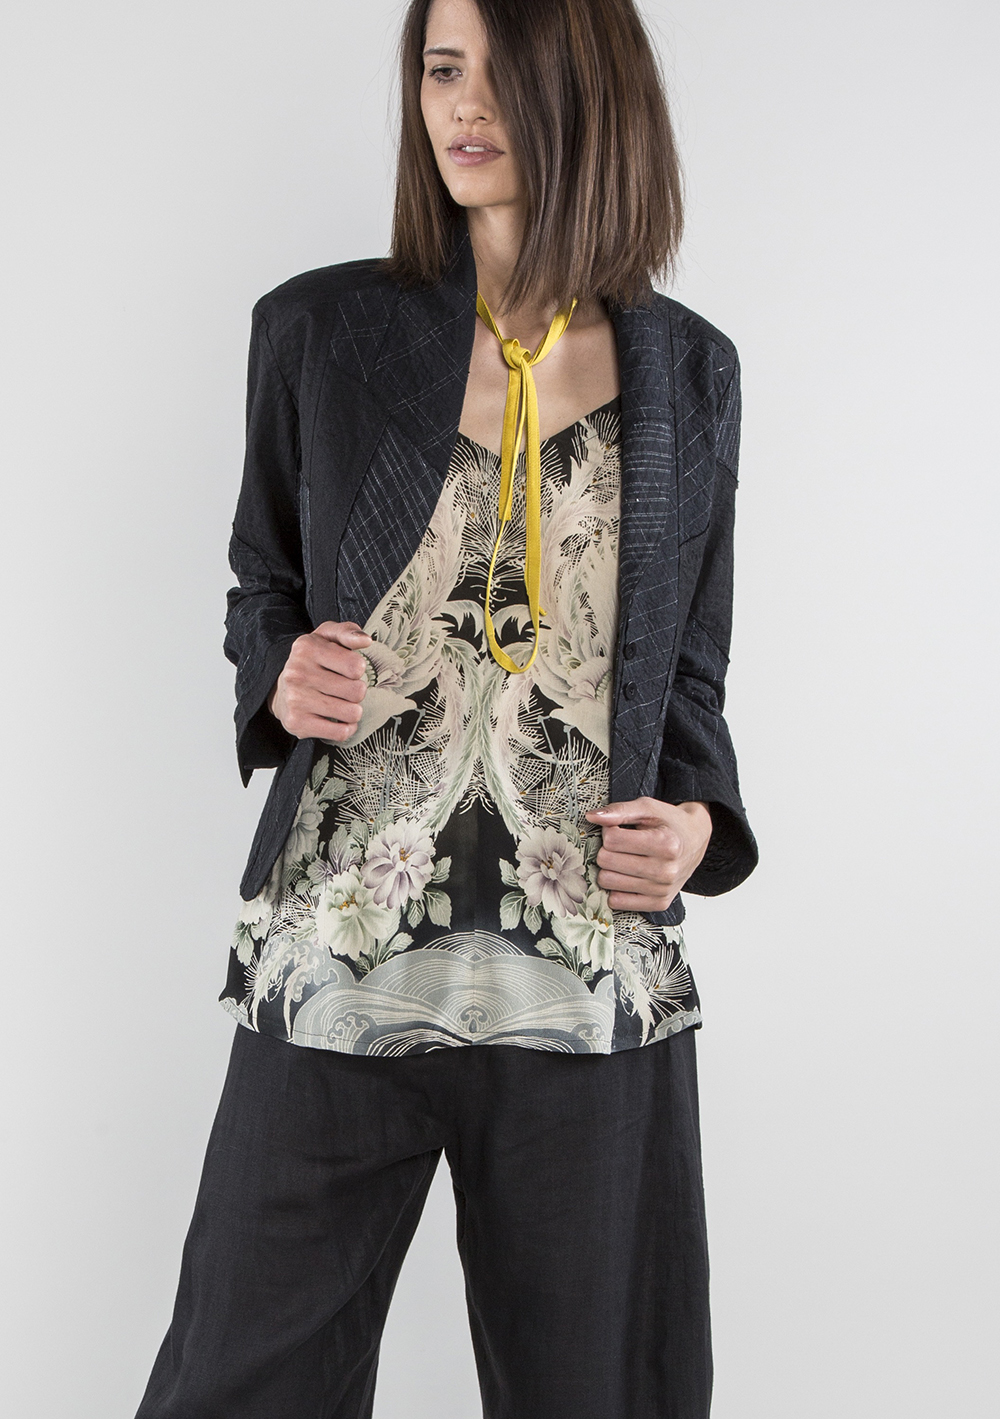 Camisole in Vintage Japanese Floral Printed Silk with Embroidery  $1,495